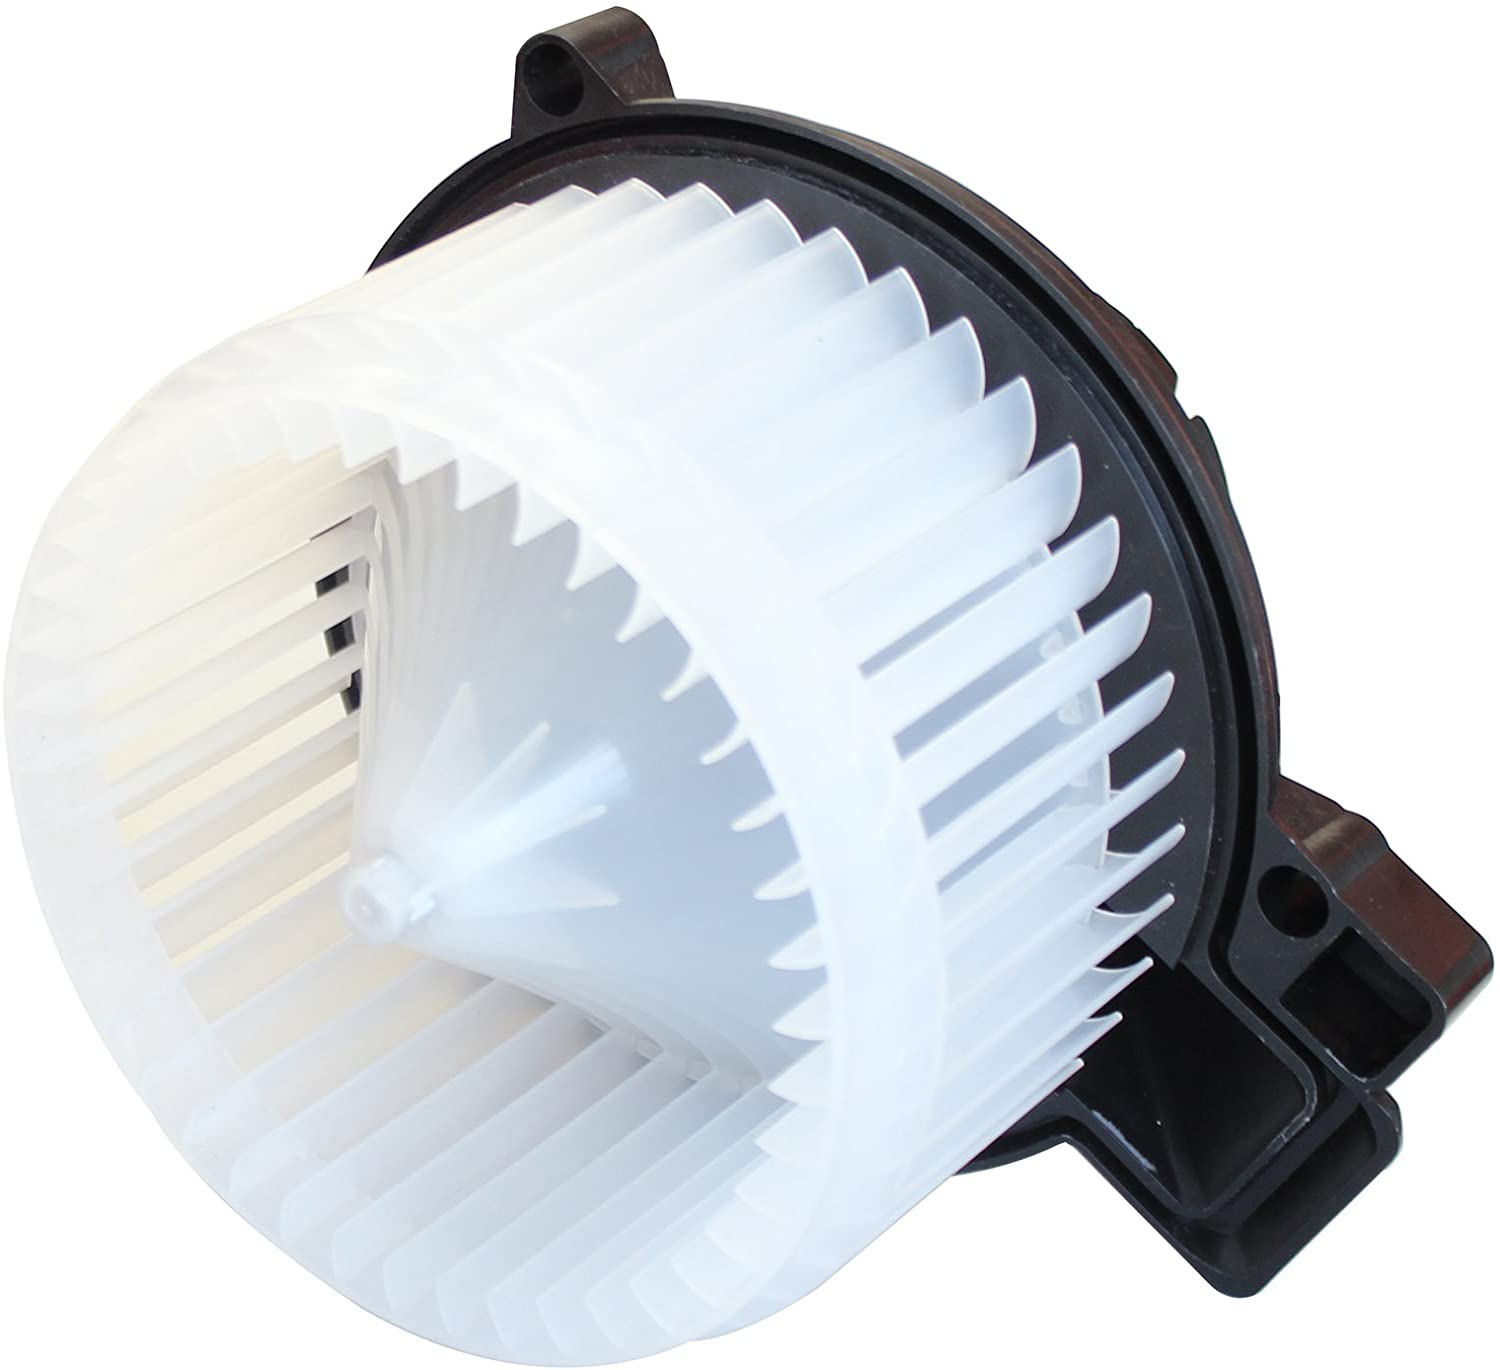 CTCAUTO HVA-C Plastic Heater Blower Motor fit for Cage High Selling quality Fan with